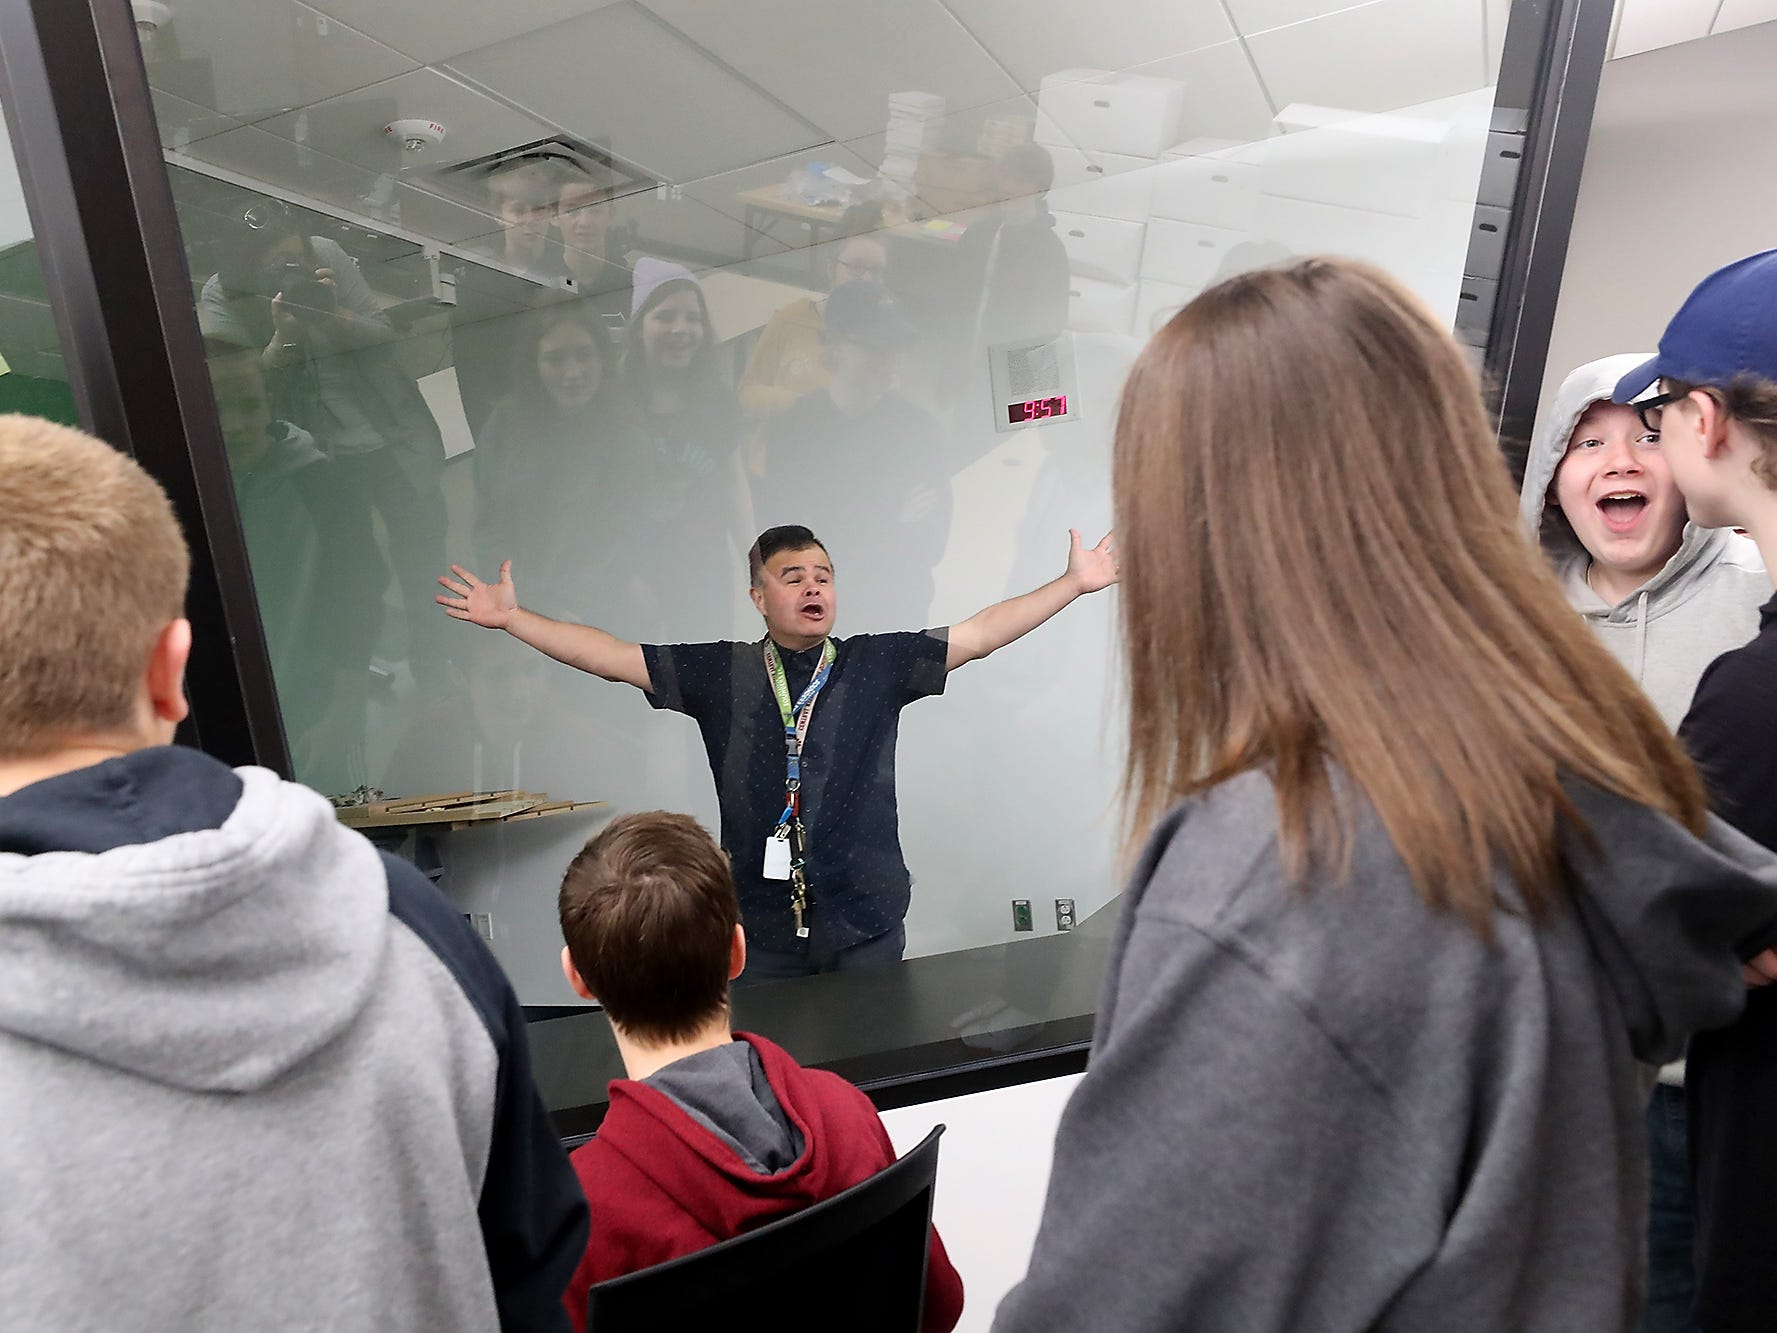 Teacher Michael Brenner gives a shout as he demonstrates the soundproof room - which resembles an aviation control tower - that he and students will use for his Aviation classes at the new Central Kitsap Middle School on Thursday, March 21, 2019. Students got a sneak peek of the school and a few of their classrooms throughout the week.